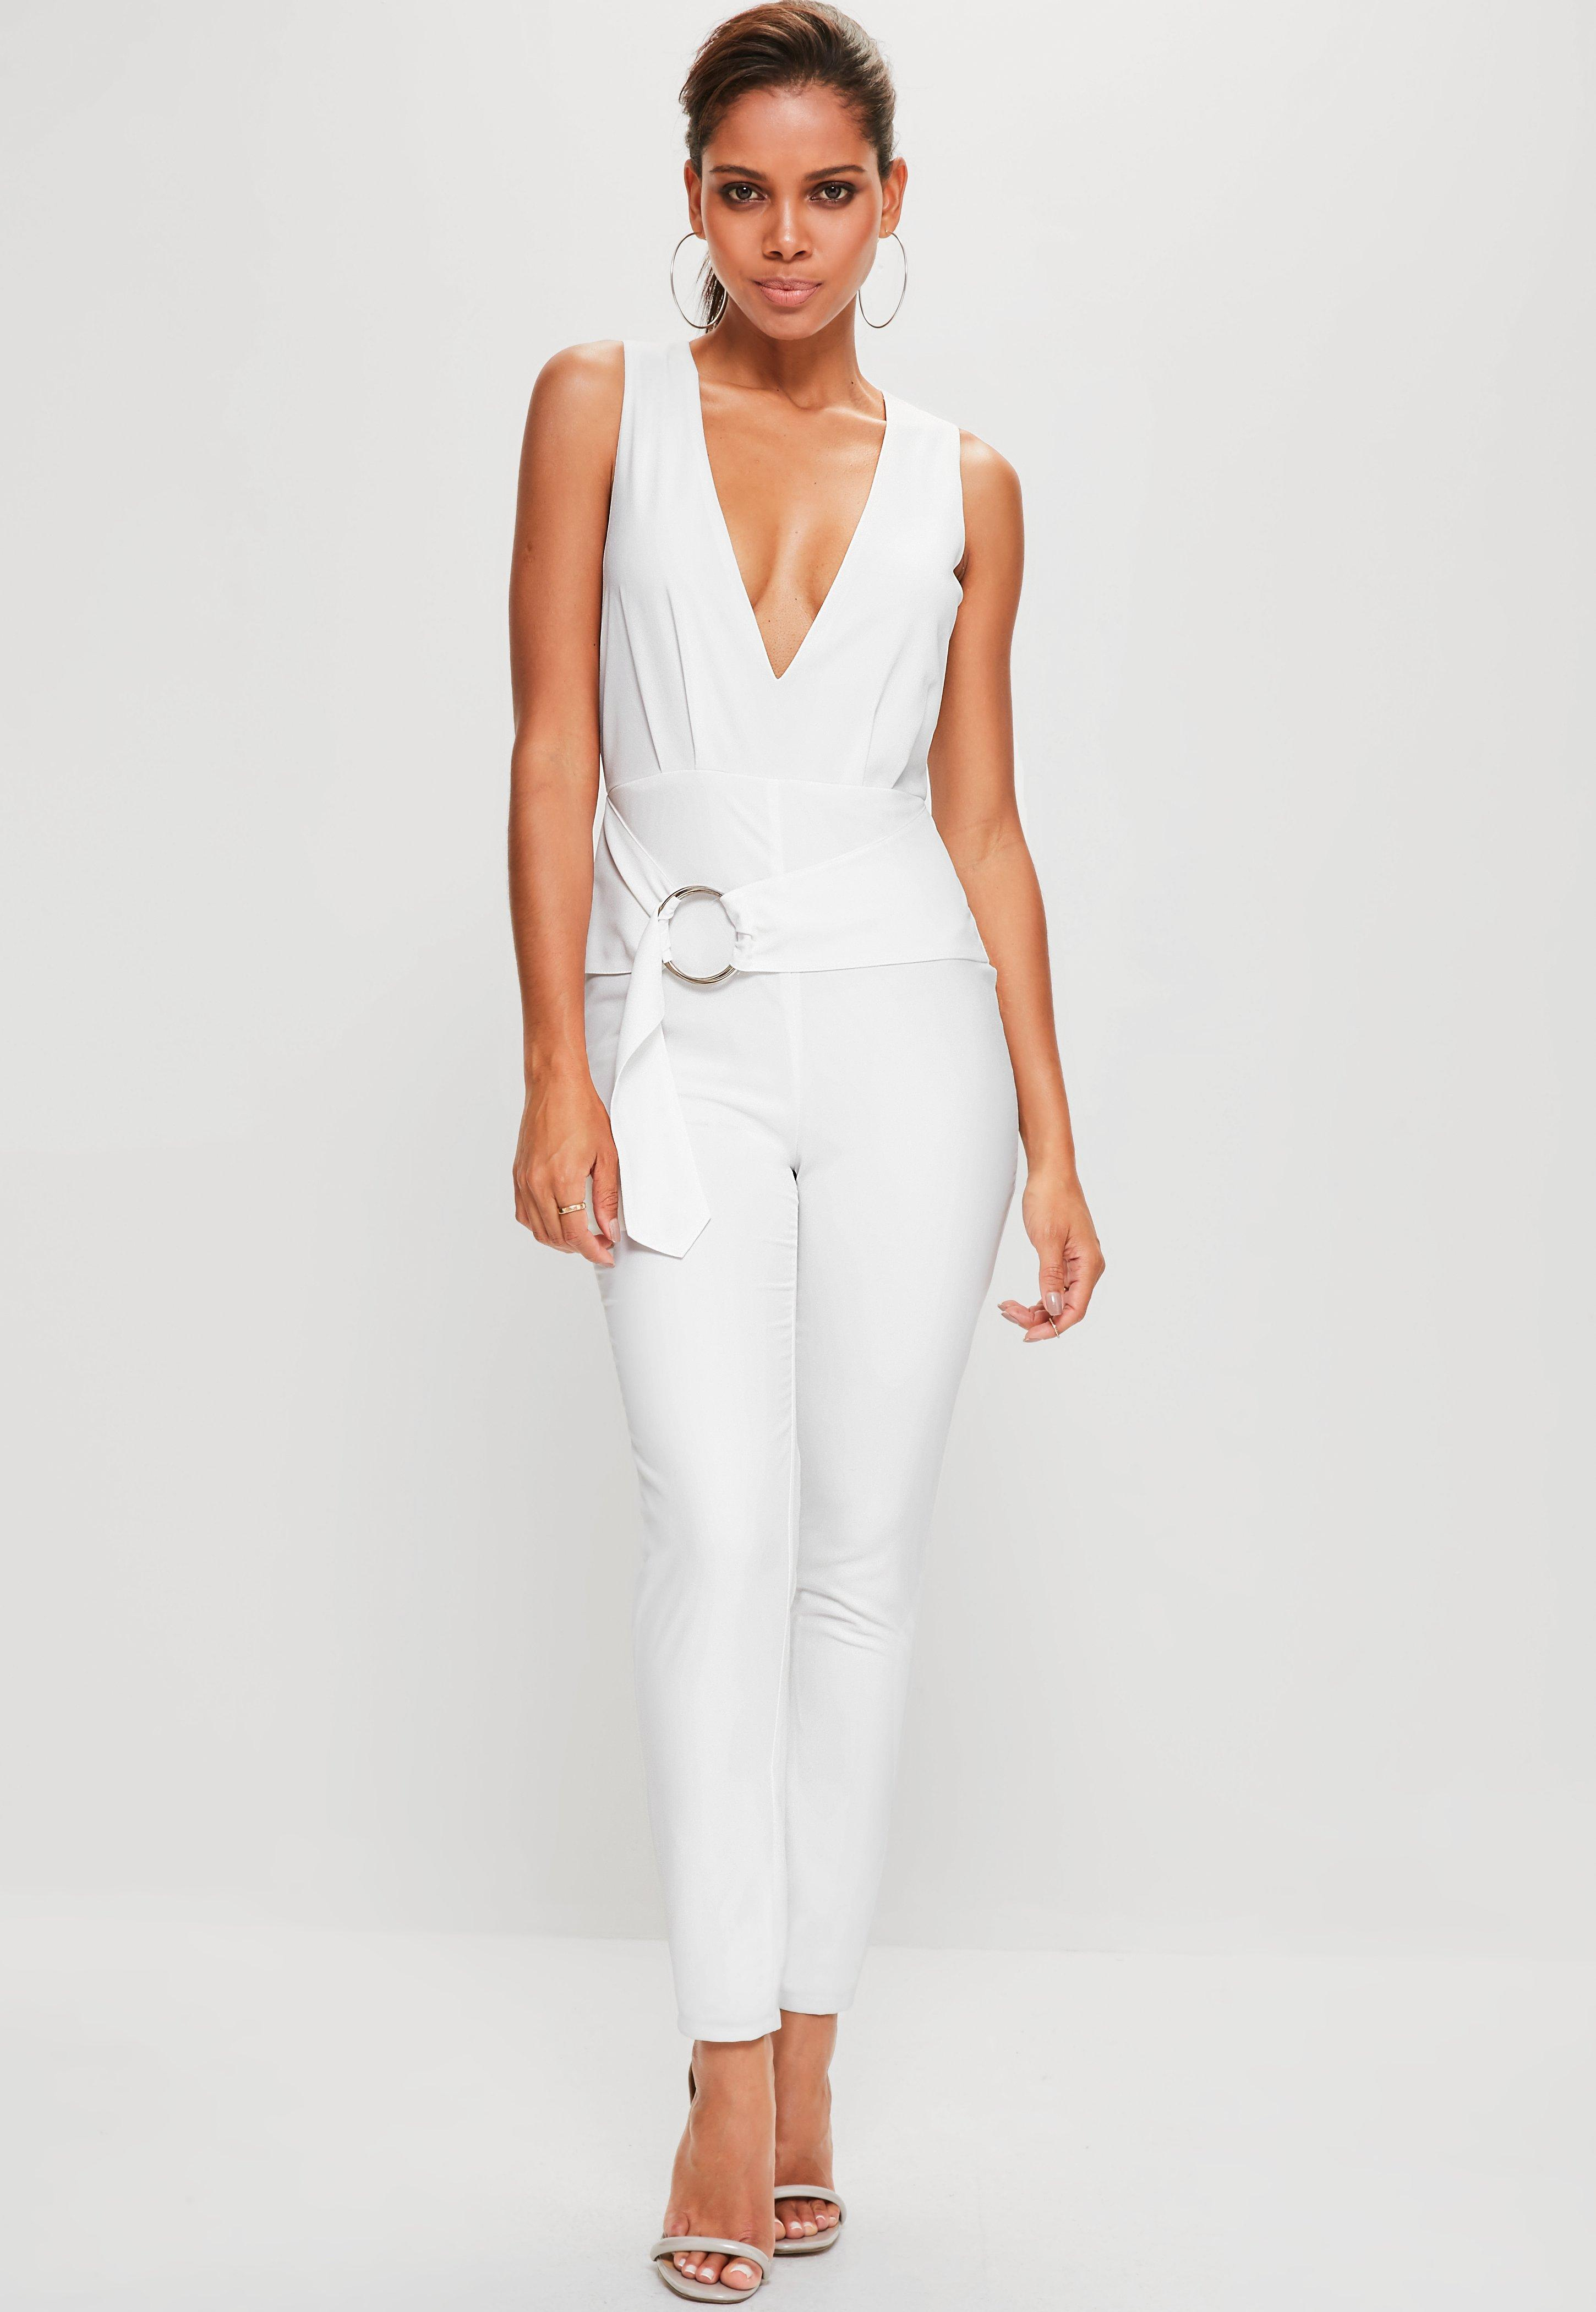 ee21693cd4f4 Lyst - Missguided White Hoop Detail Plunge Sleeveless Jumpsuit in White